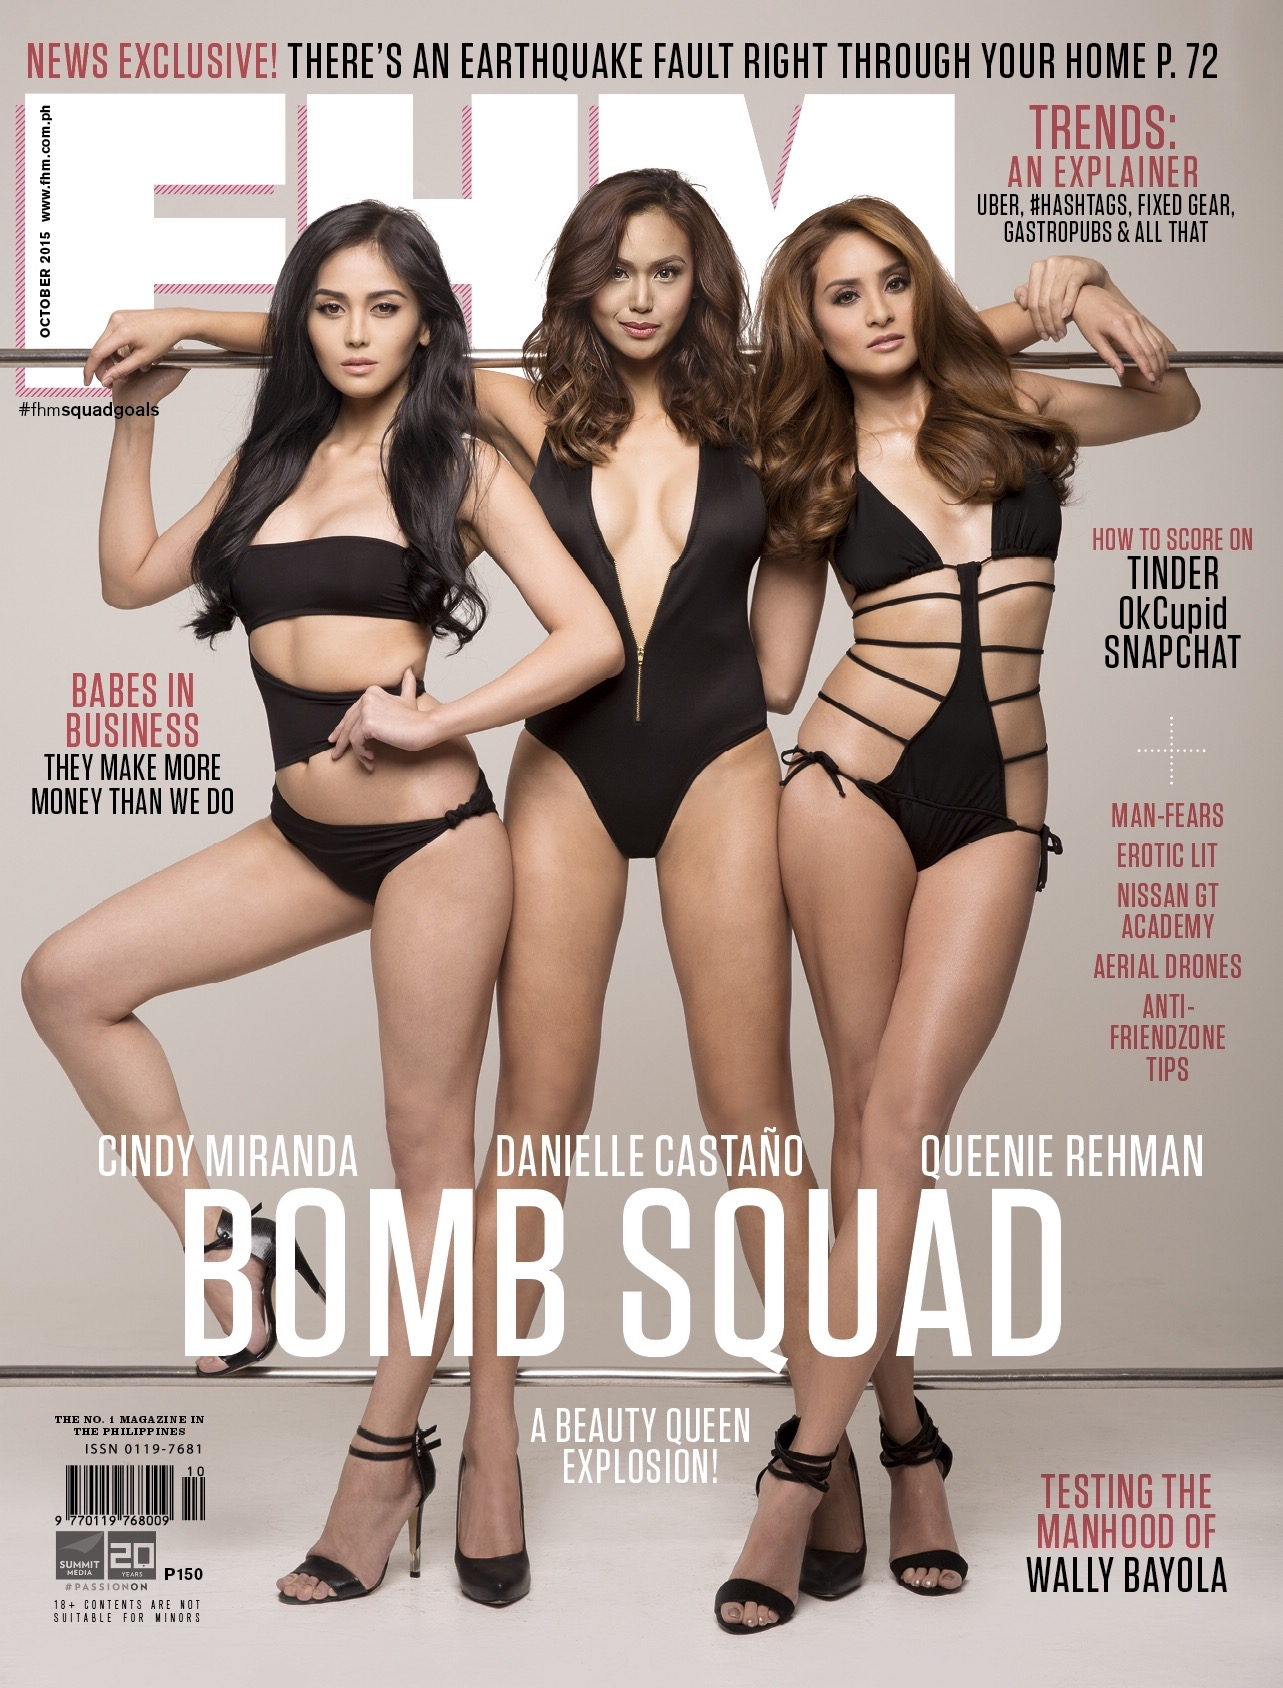 fhm naked models photos in philippines